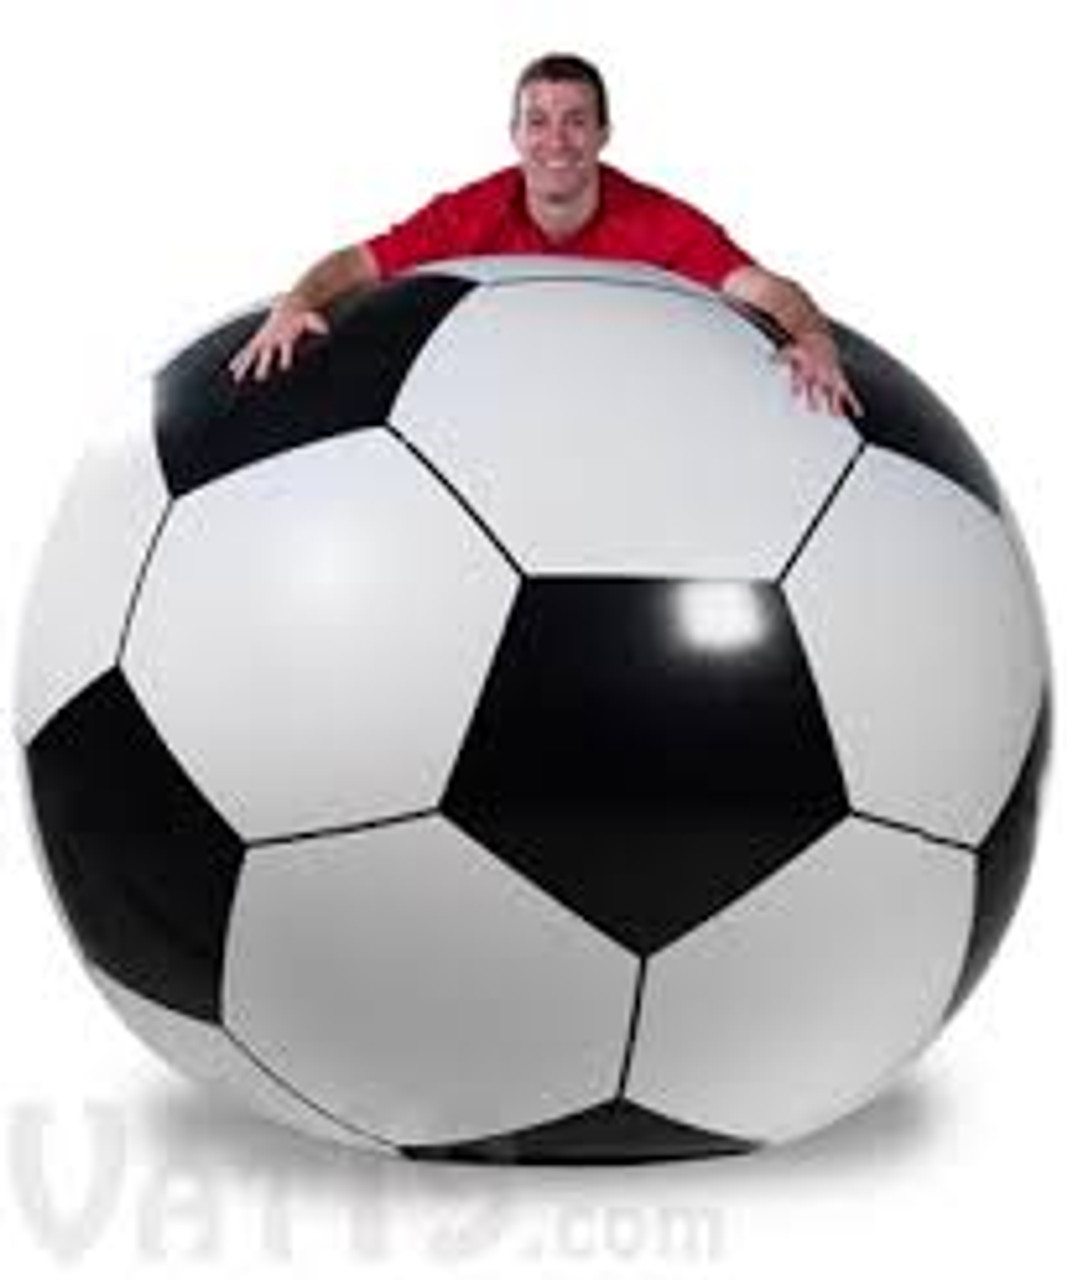 giant-gigantic-big-ass-6-foot-soccer-ball-pool-party-outdoors-inflatable-float-activity-summer-nightclubshop-supplies-xxl-5